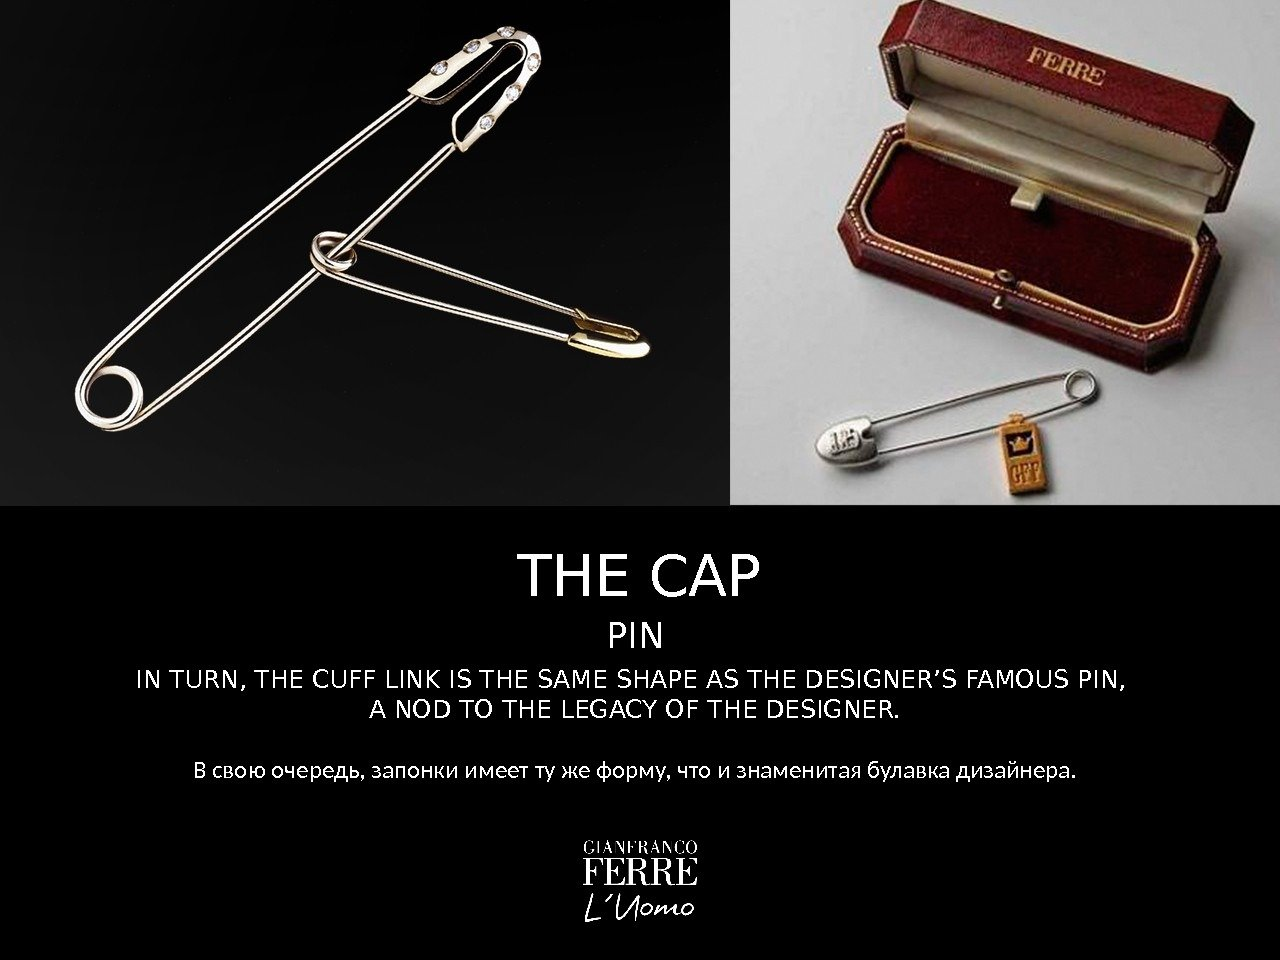 THE CAP IN TURN, THE CUFF LINK IS THE SAME SHAPE AS THE DESIGNER'S